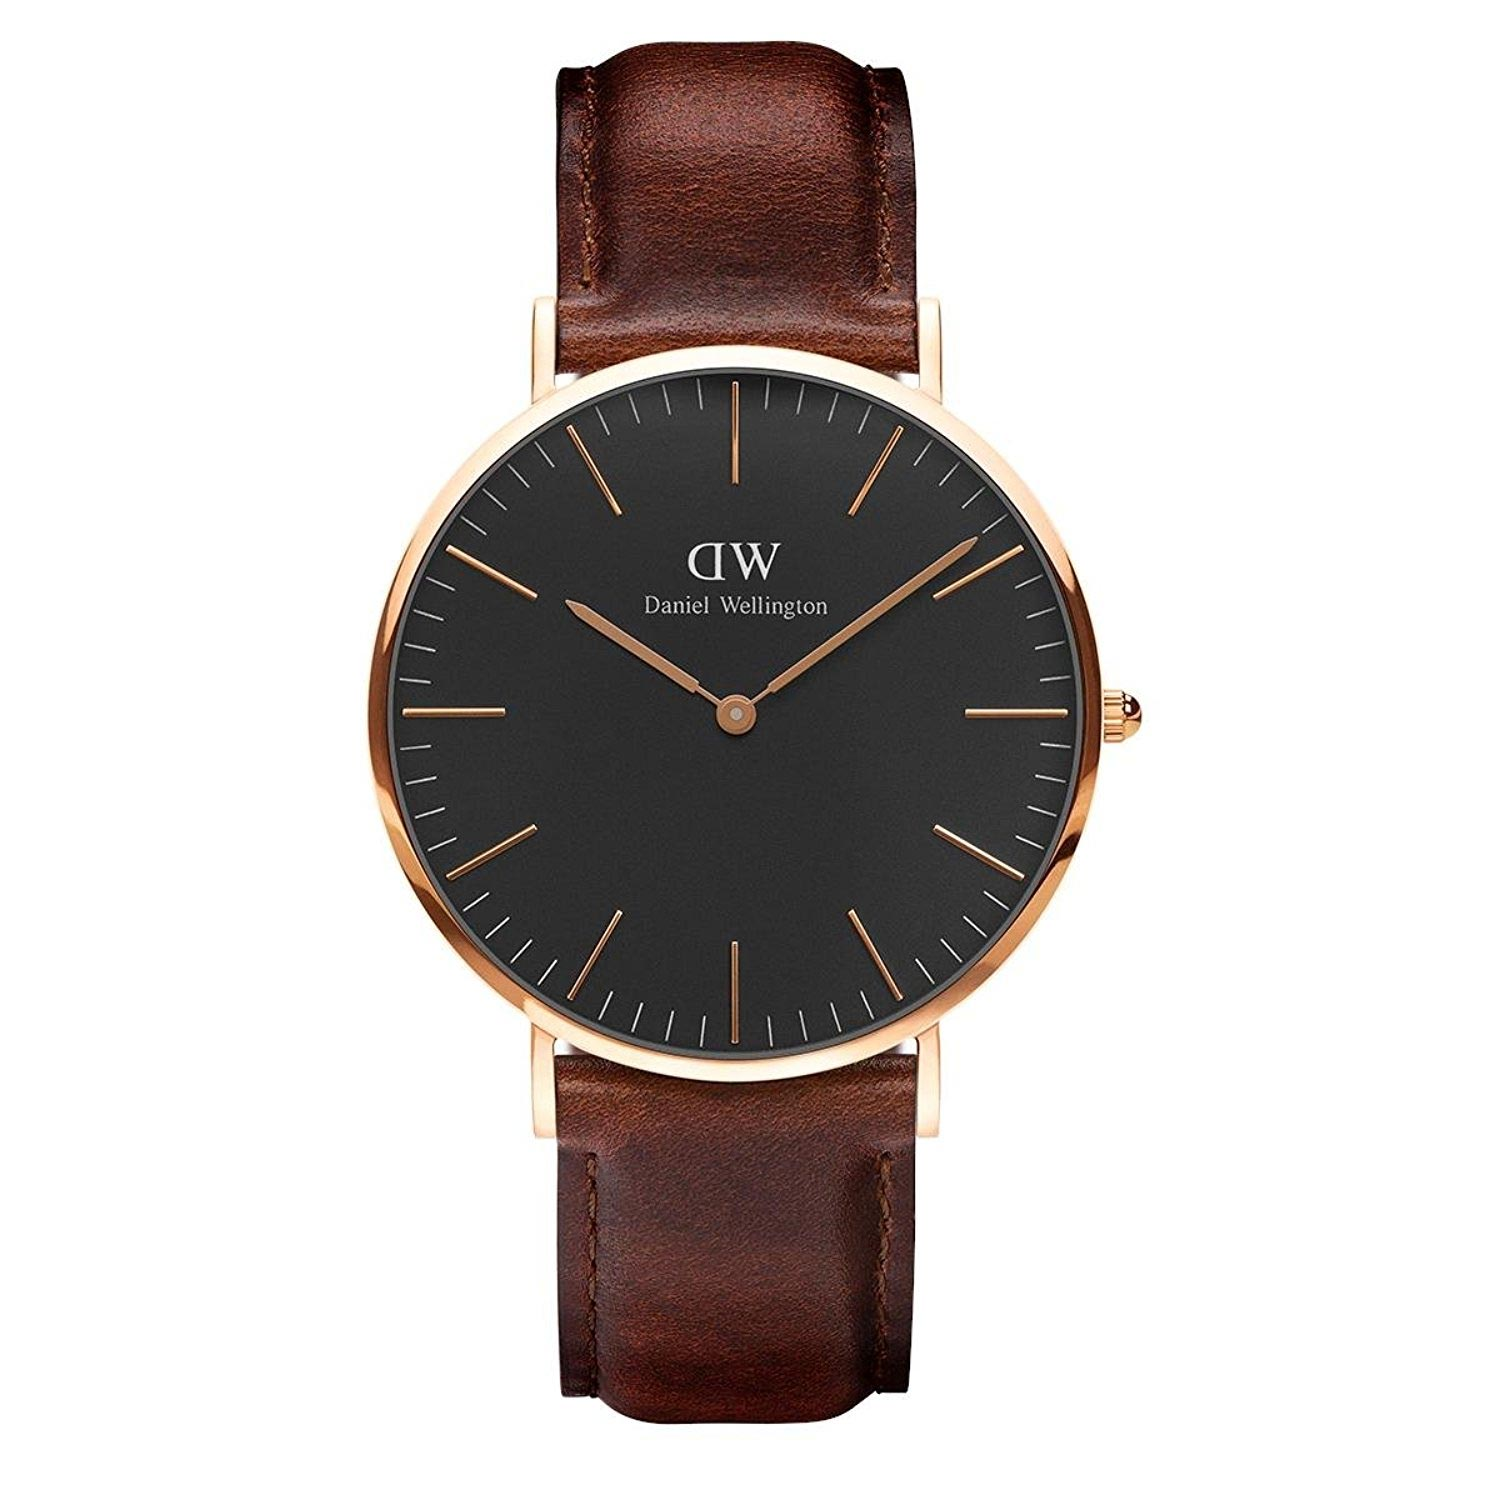 daniel wellington business uhr analoguhr f r m nner mit zertifikat. Black Bedroom Furniture Sets. Home Design Ideas